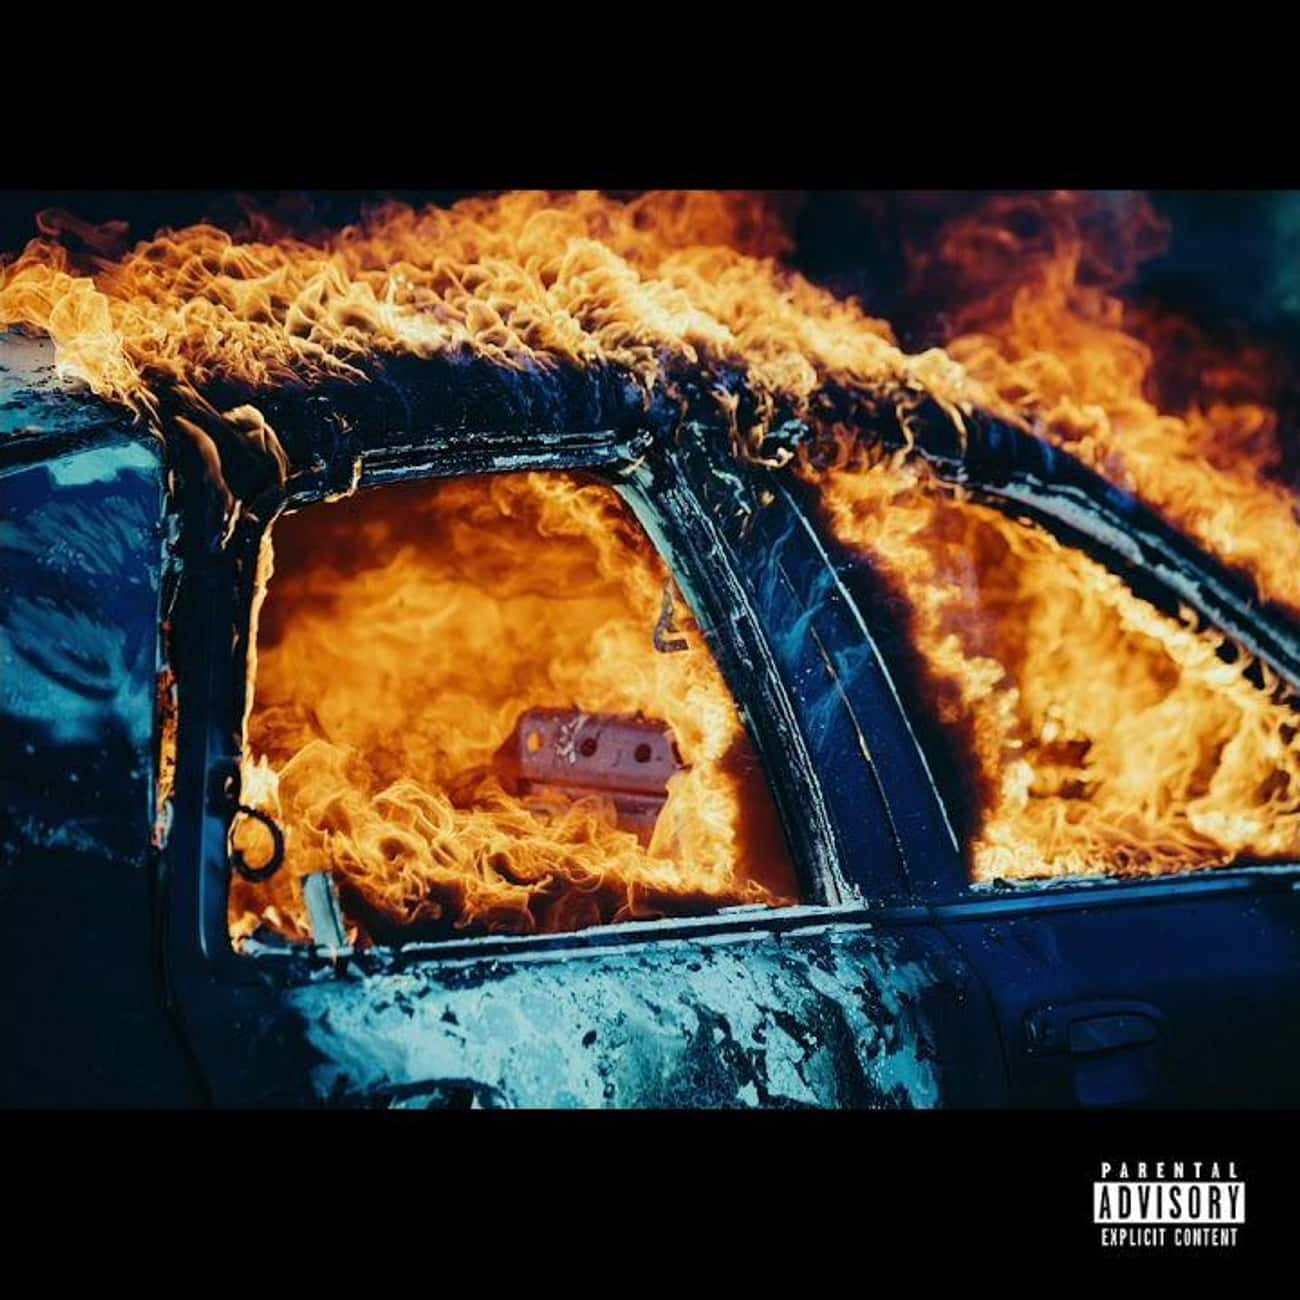 Trial by Fire is listed (or ranked) 4 on the list The Best Yelawolf Albums, Ranked